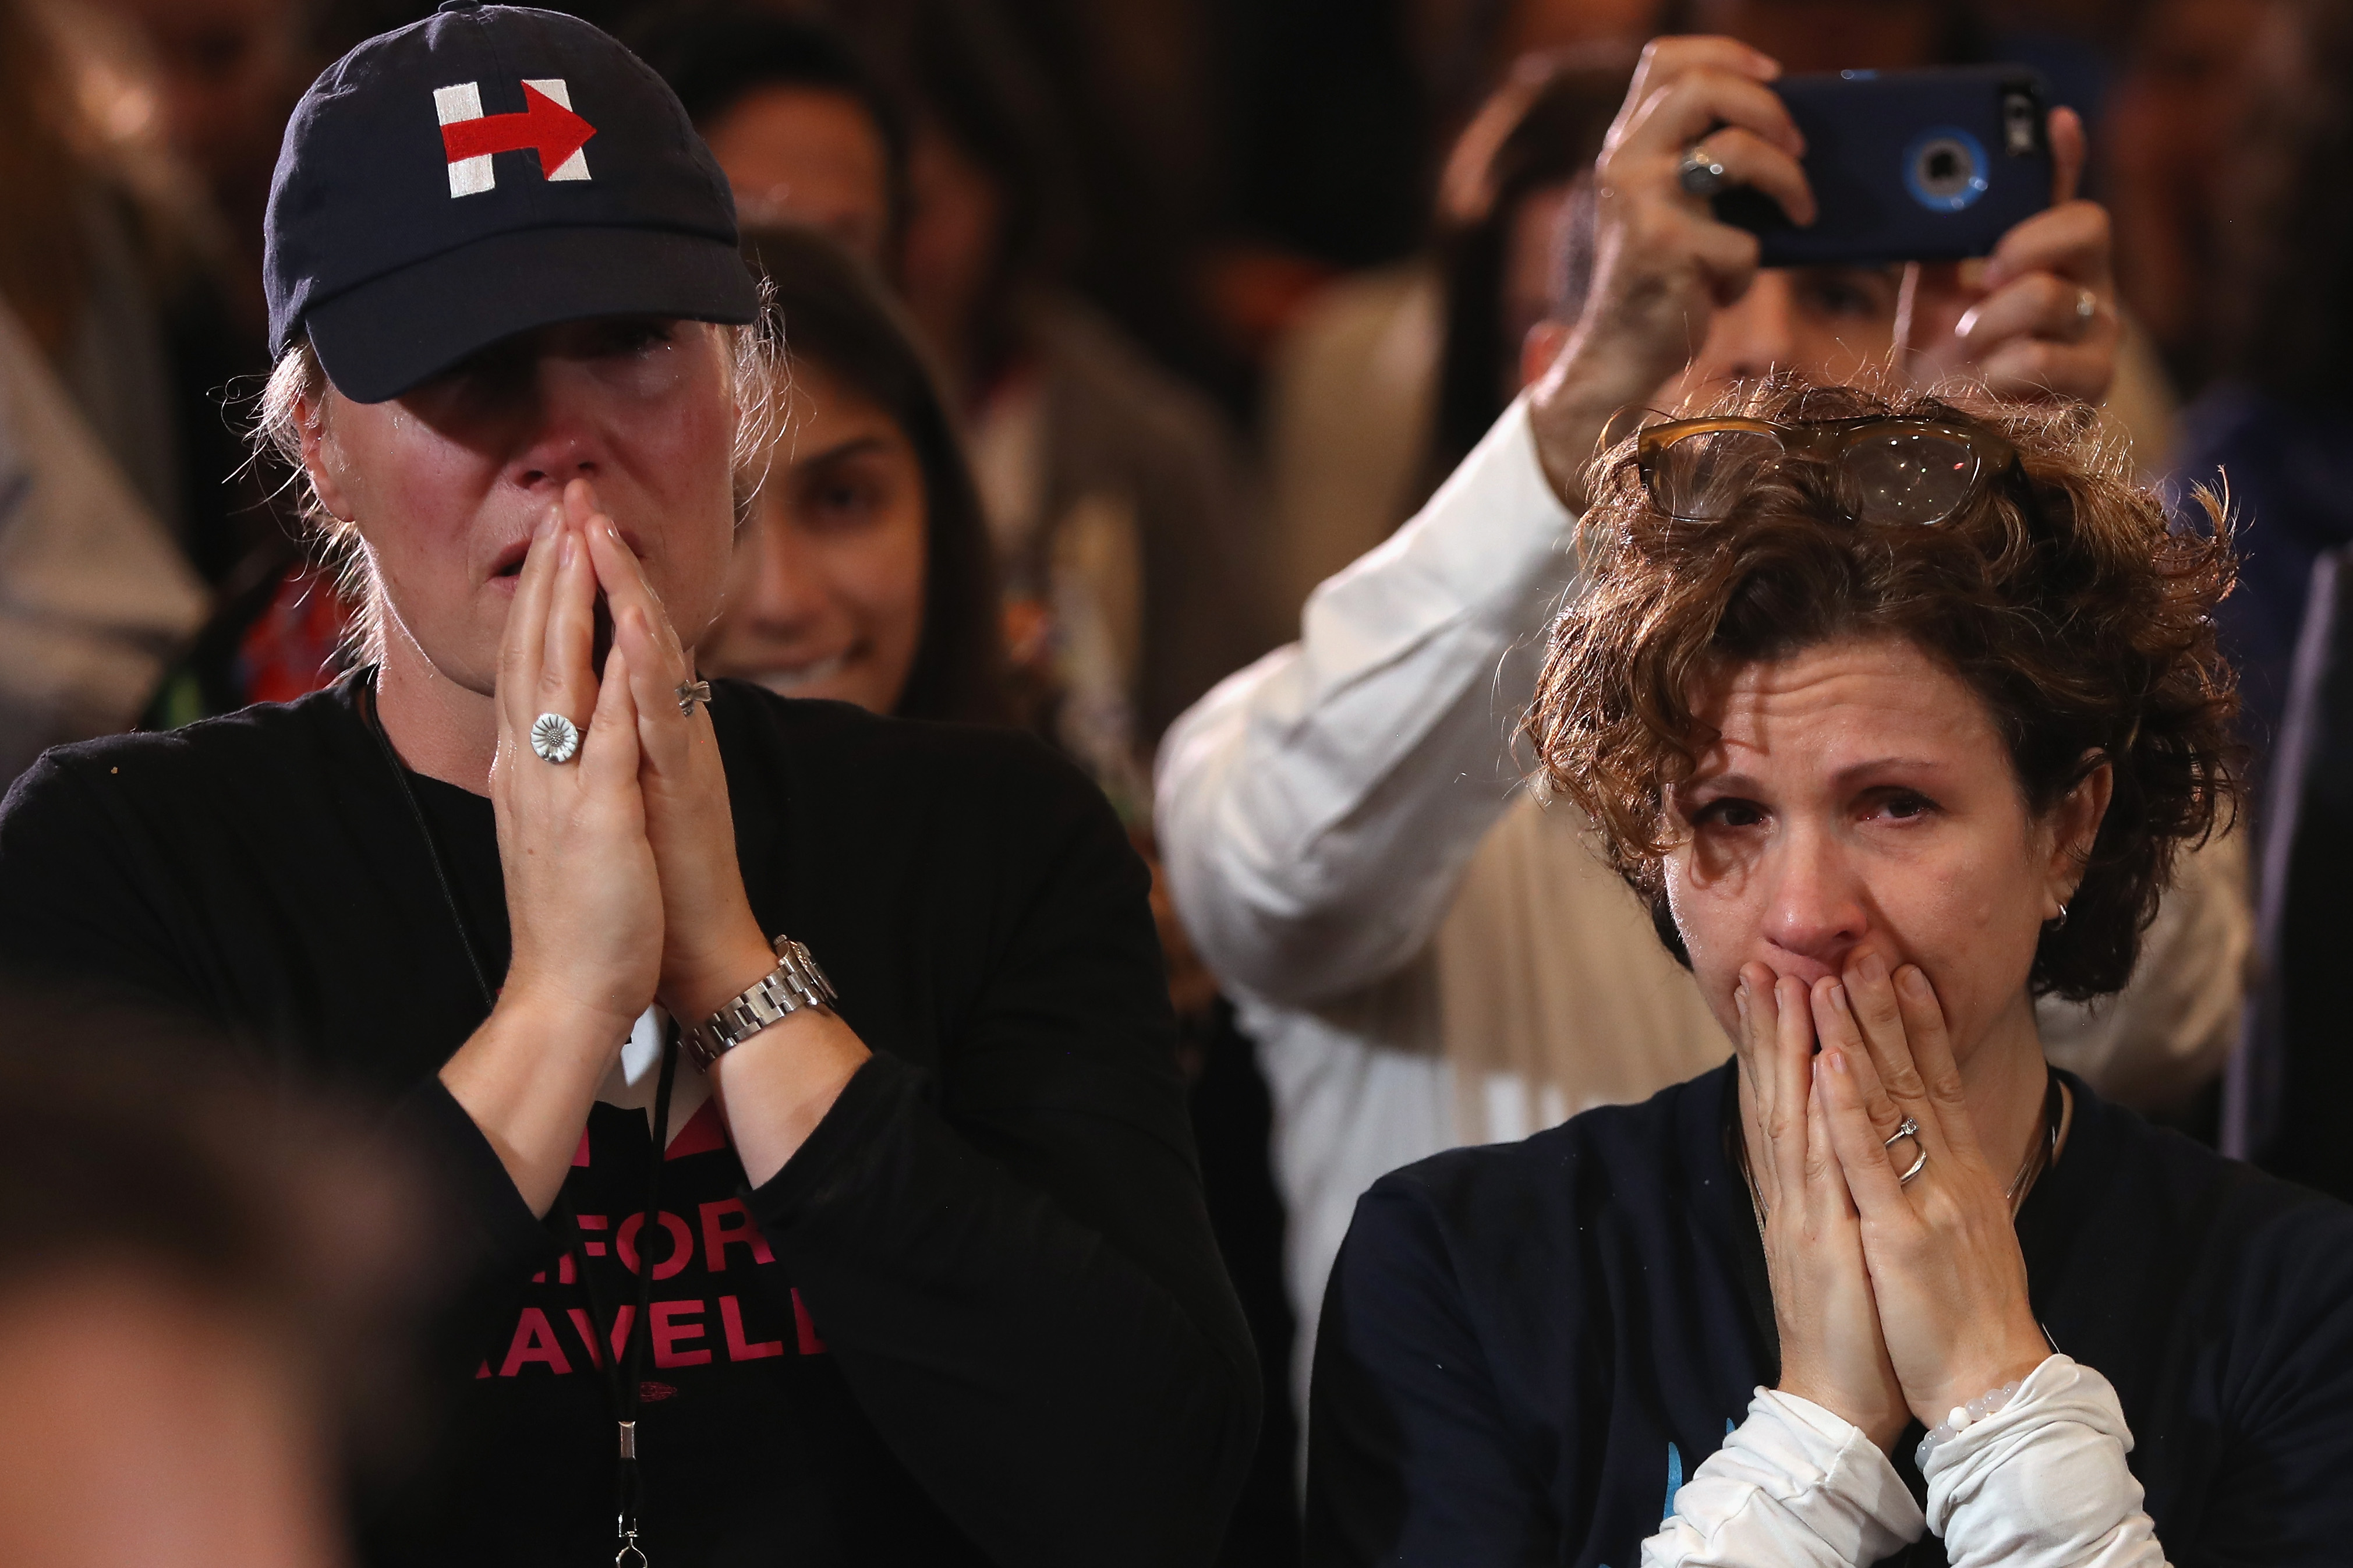 Staffers and supporters react as former Secretary of State Hillary Clinton concedes the presidential election at the New Yorker Hotel on November 9, 2016 in New York City. (Justin Sullivan/Getty Images)